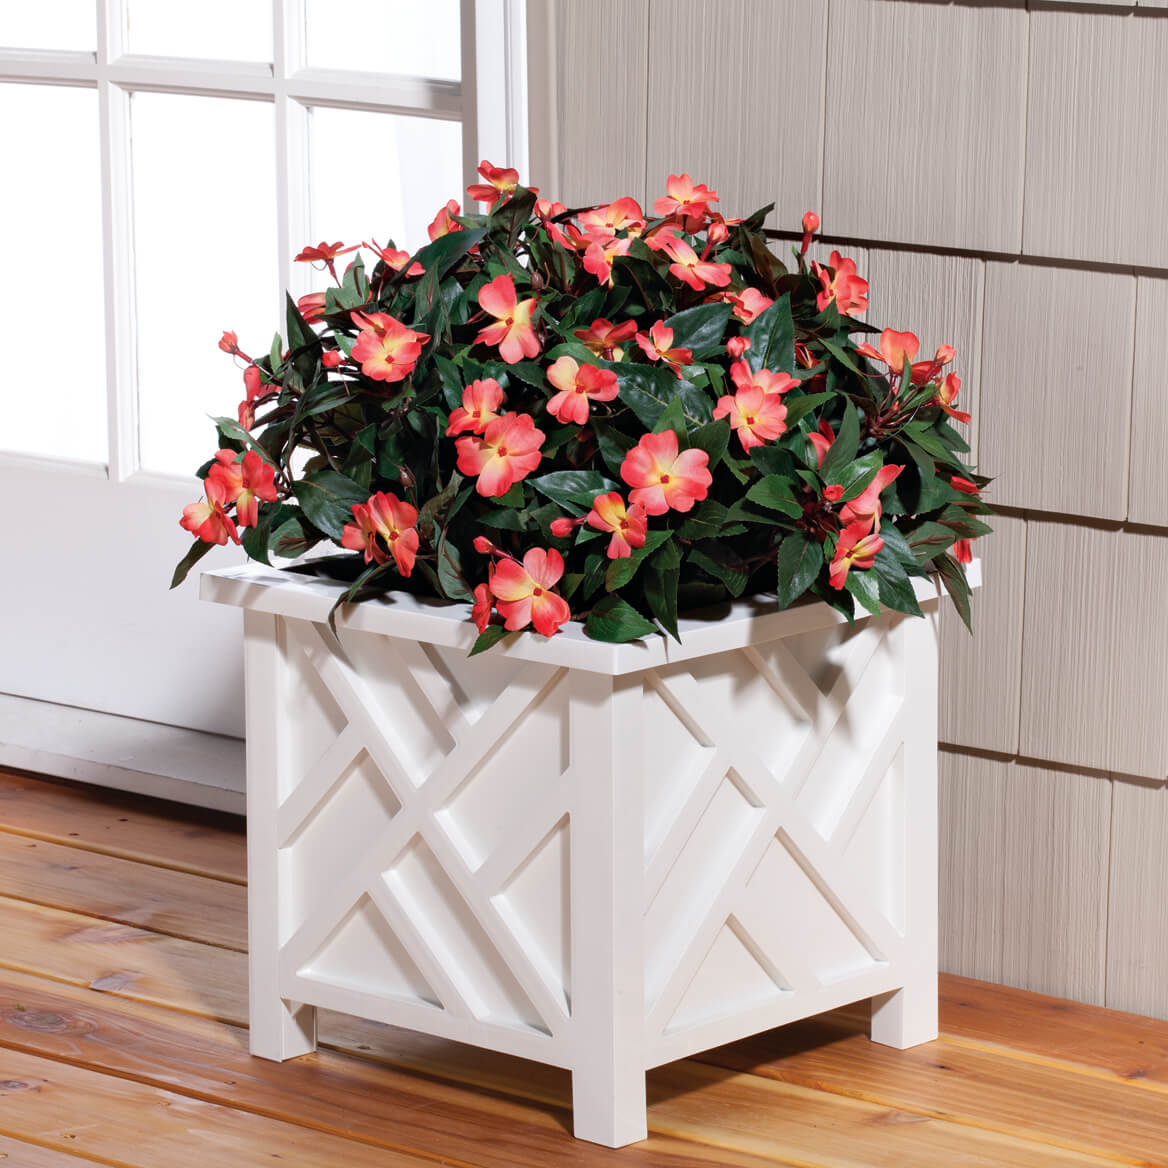 Chippendale Planter 329156. Write a Review Read Q&A